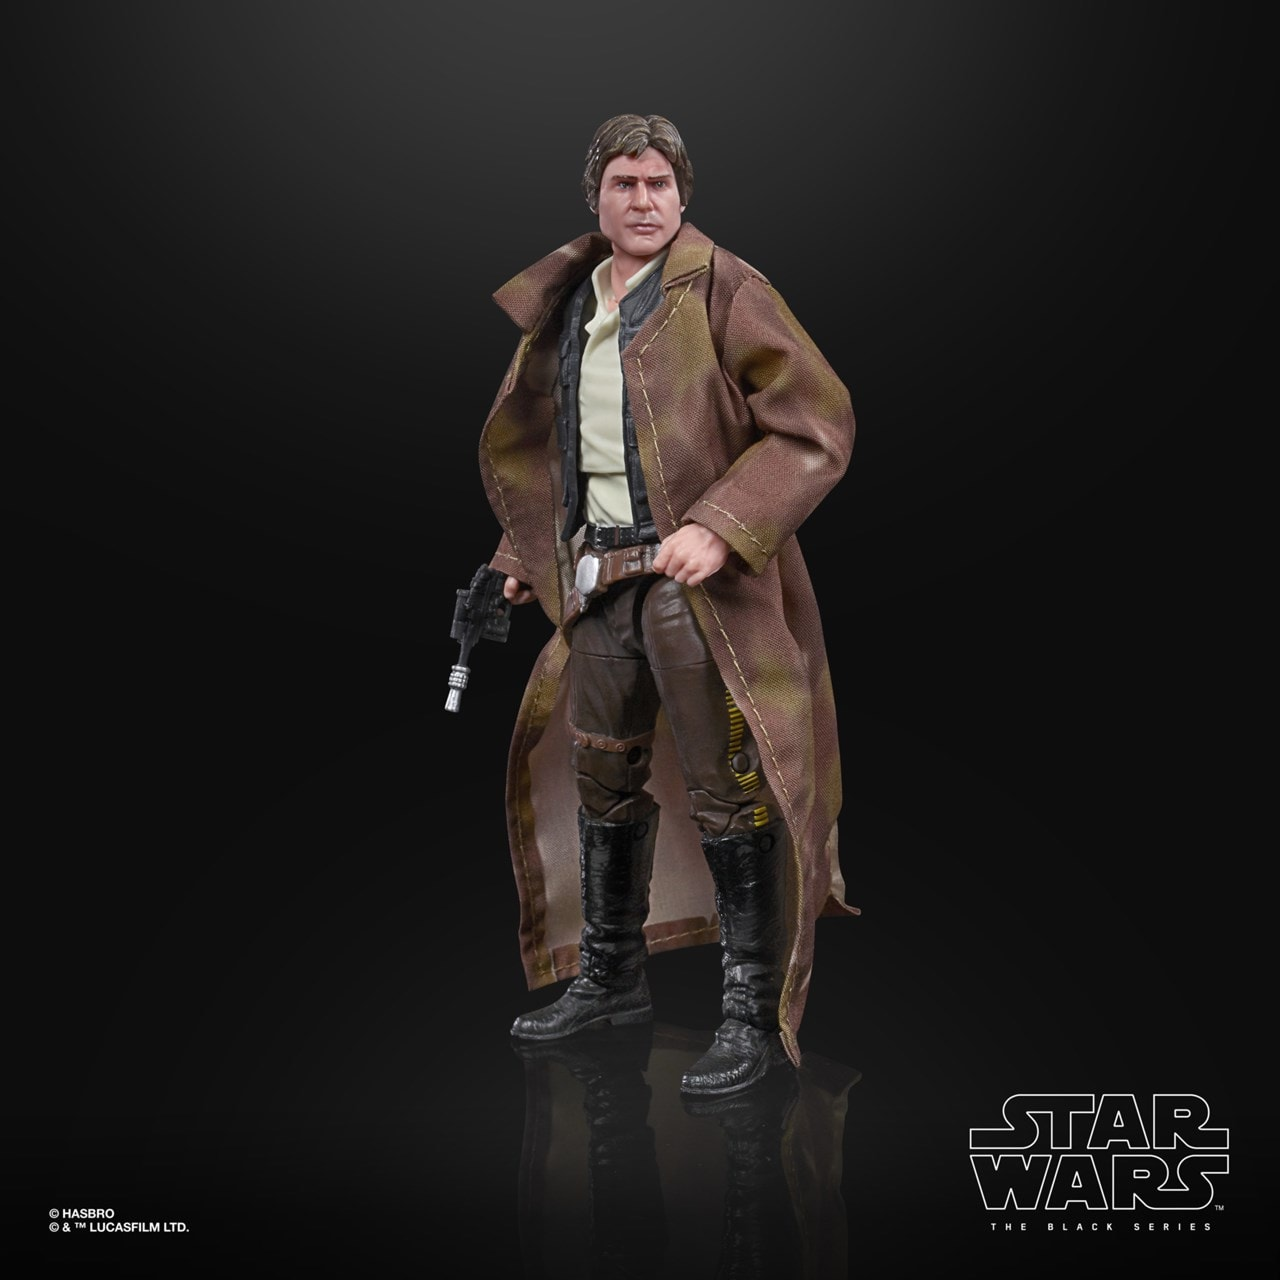 Han Solo: Episode 6: The Black Series: Star Wars Action Figure - 2